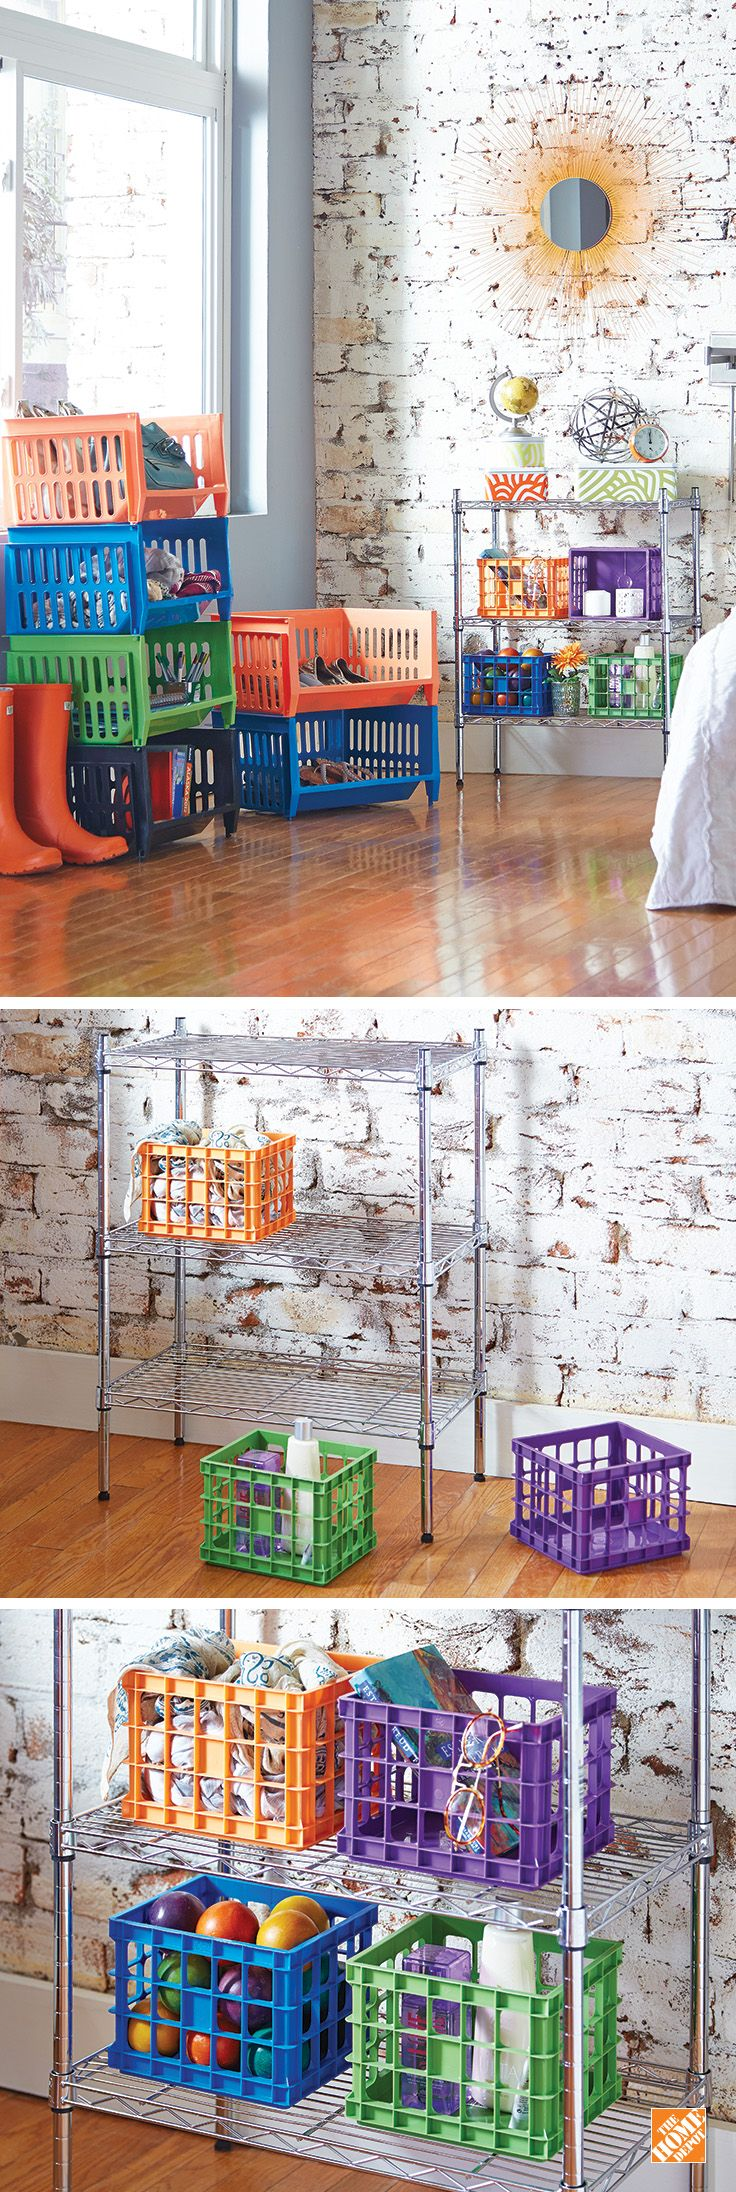 Decorating your home or office can be functional too. With these multicolored stackable baskets and crates, you can organize items while also adding a bit of creative flair. Stack them high or keep them low. You can even create a makeshift chest of drawers by storing the crates on a small shelving unit. Click through to see these and other storage solutions at The Home Depot!